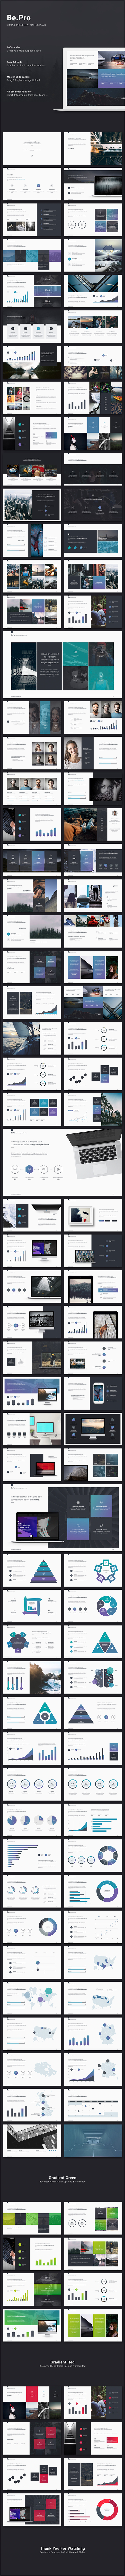 Bepro Simply  Business Powerpoint Template  Element Chart